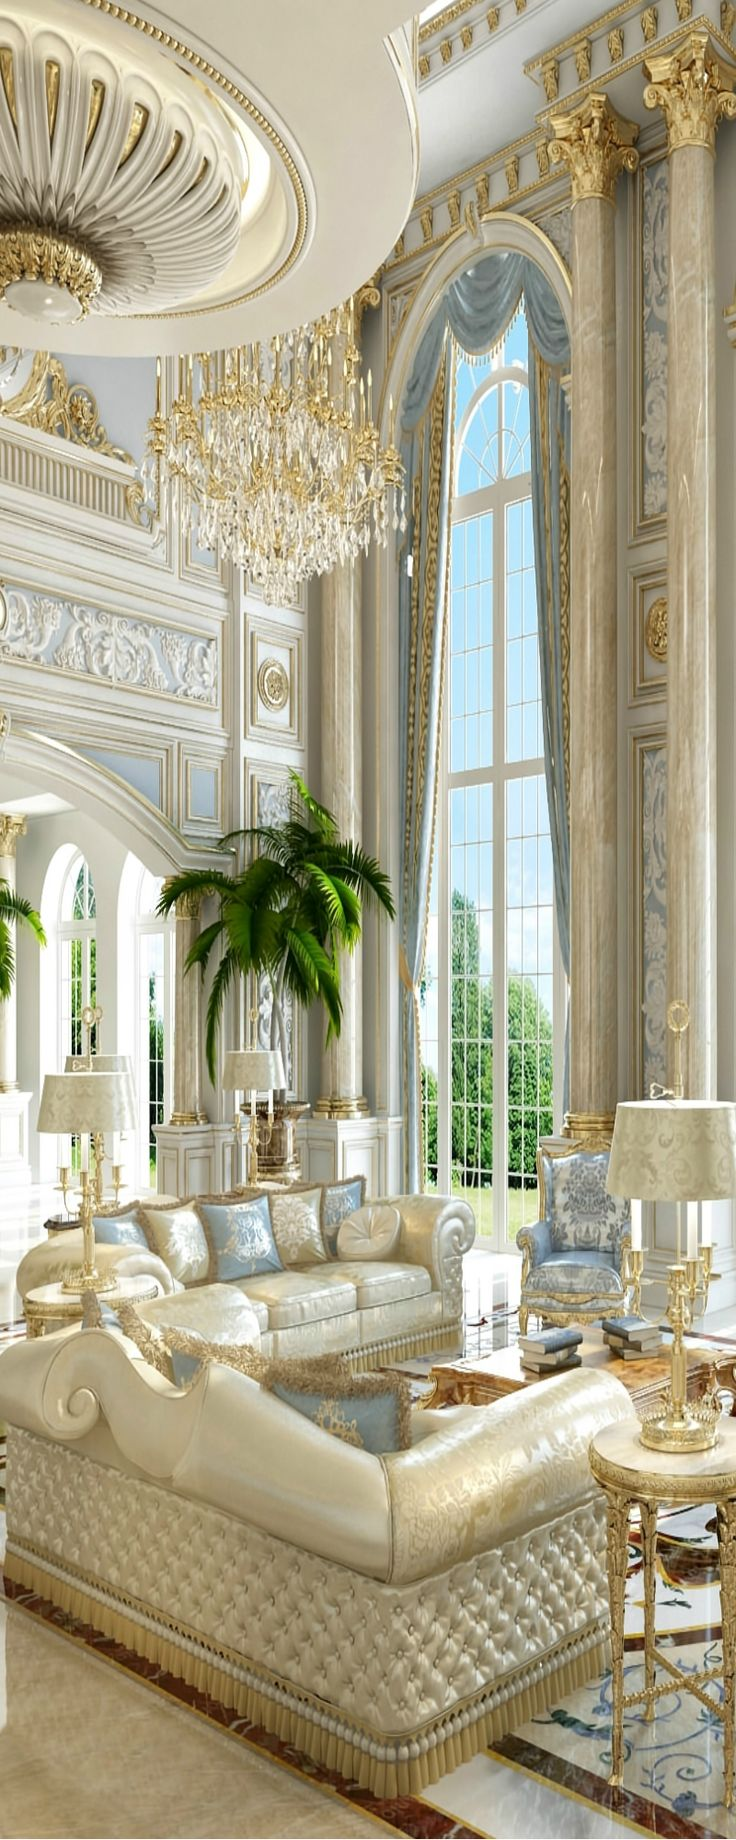 Luxury Home Interior Design Luxury Interior Designer: Best 25+ Old Mansions Interior Ideas On Pinterest